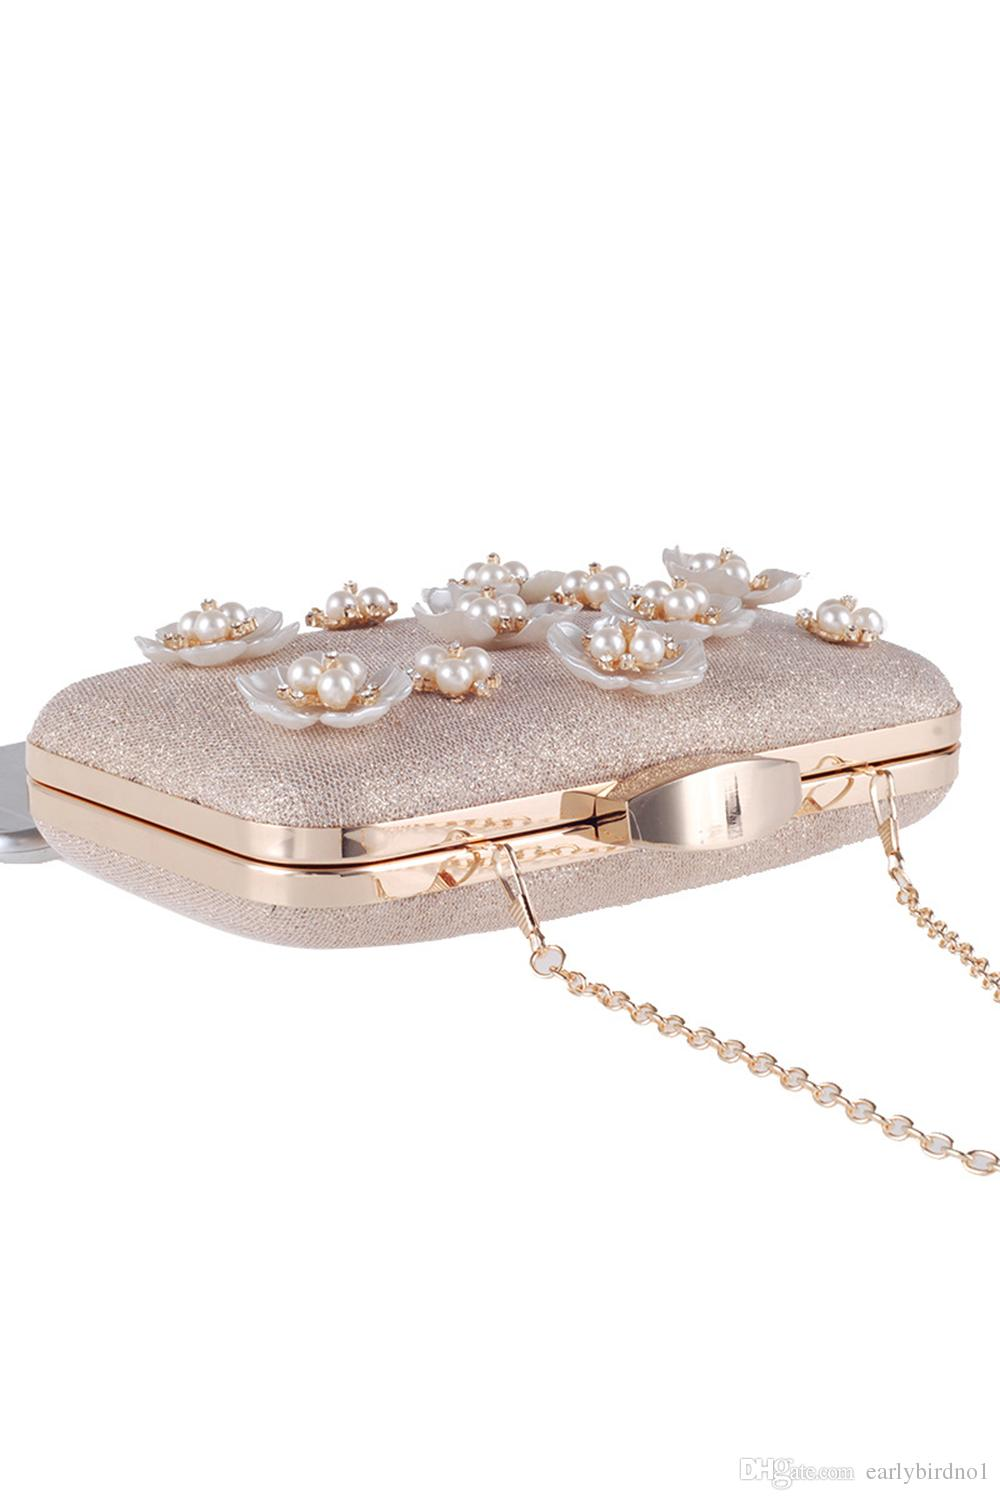 Hand Made Flowers Pearls Bridal Hand Bags Women Clutch Bags For Evening Celebrities Ladies Minaudiere Bags with Chain CPA955